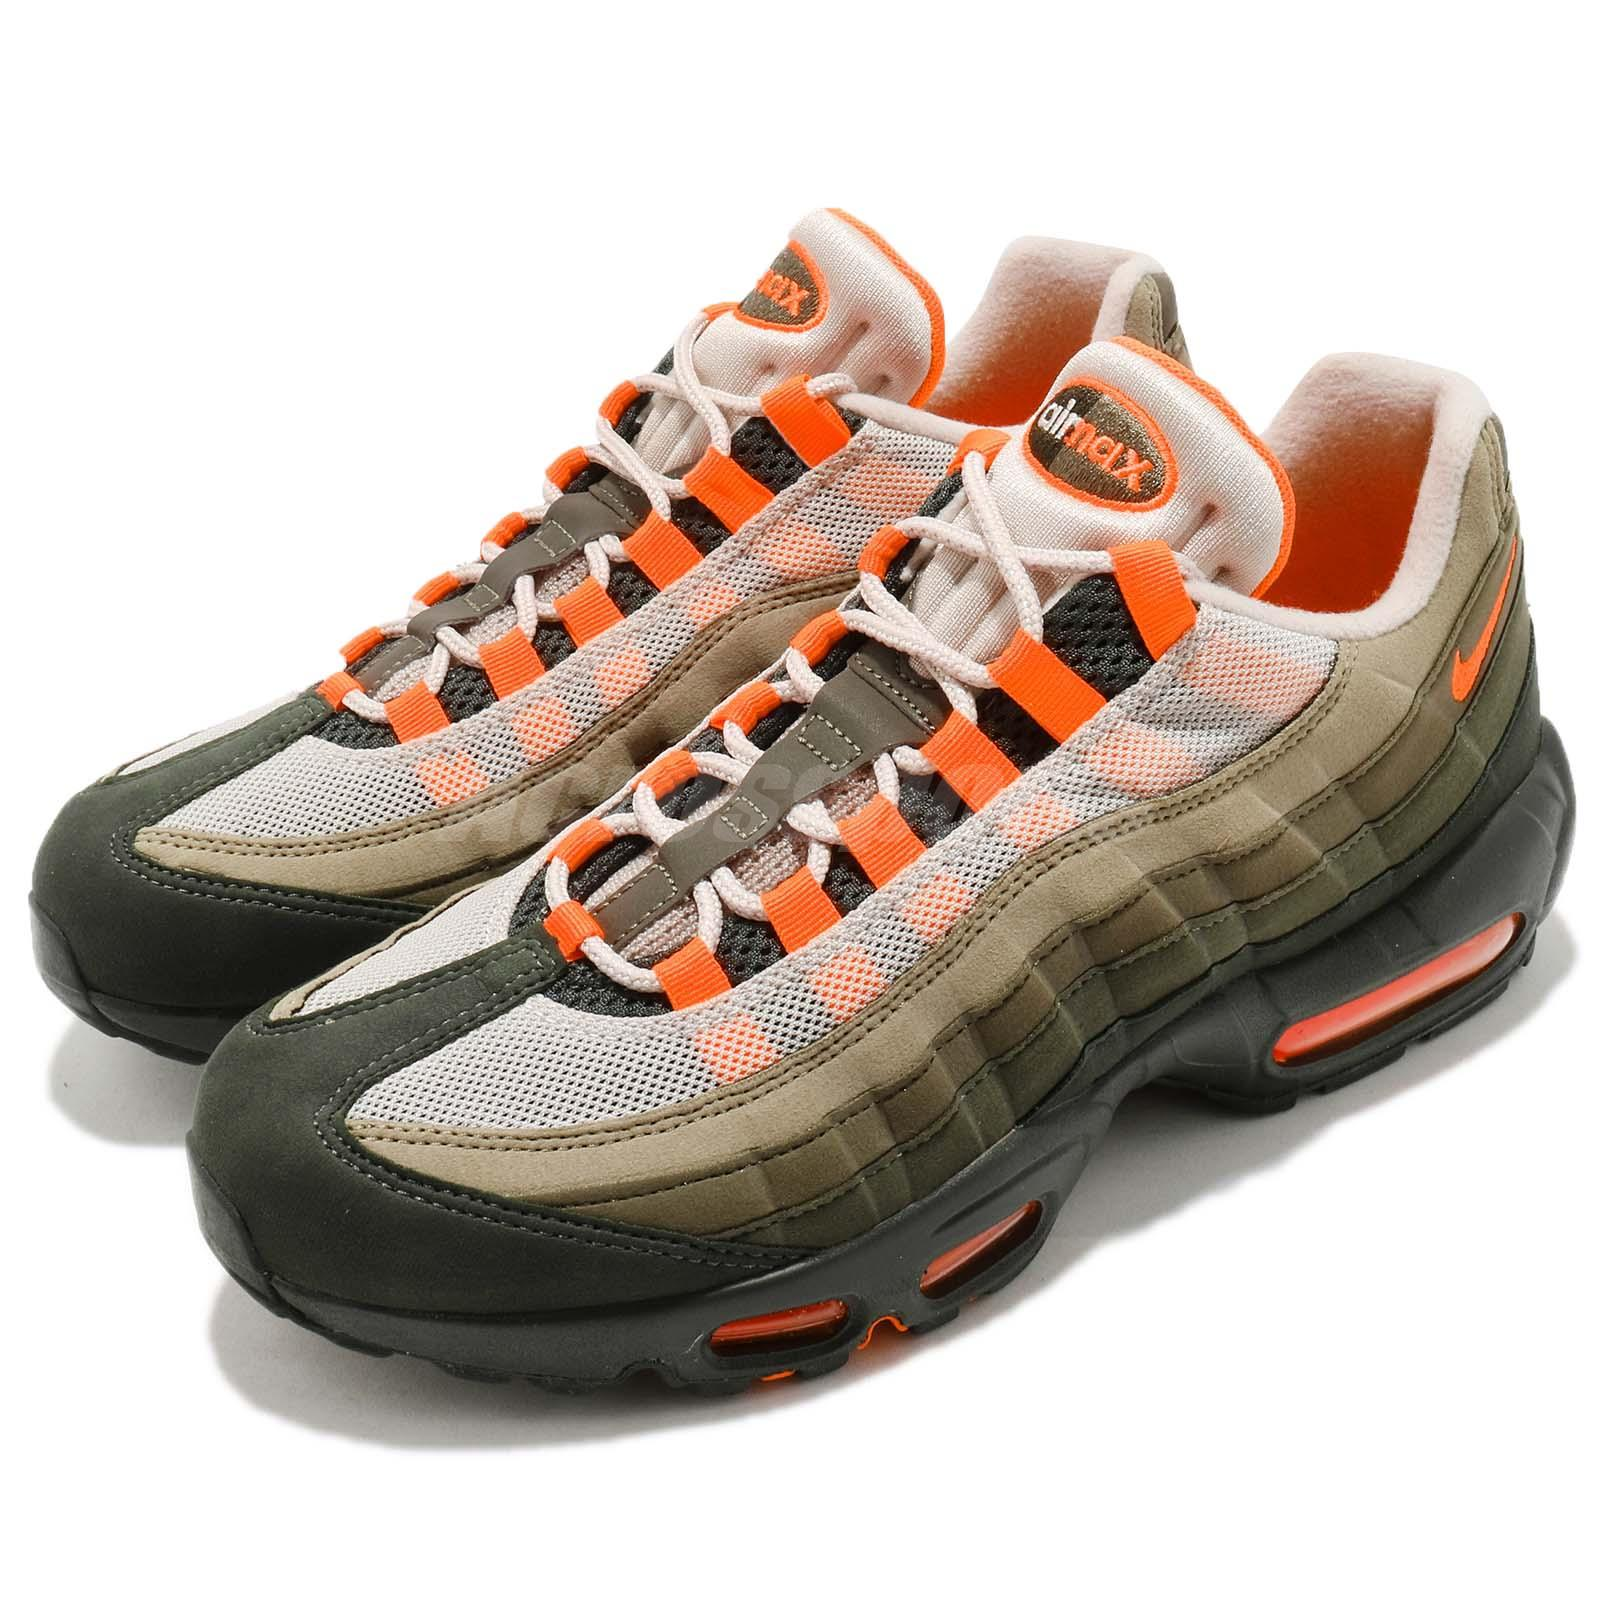 370a29470d78 Details about Nike Air Max 95 OG String Green Total Orange Neutral Olive NSW  Shoes AT2865-200